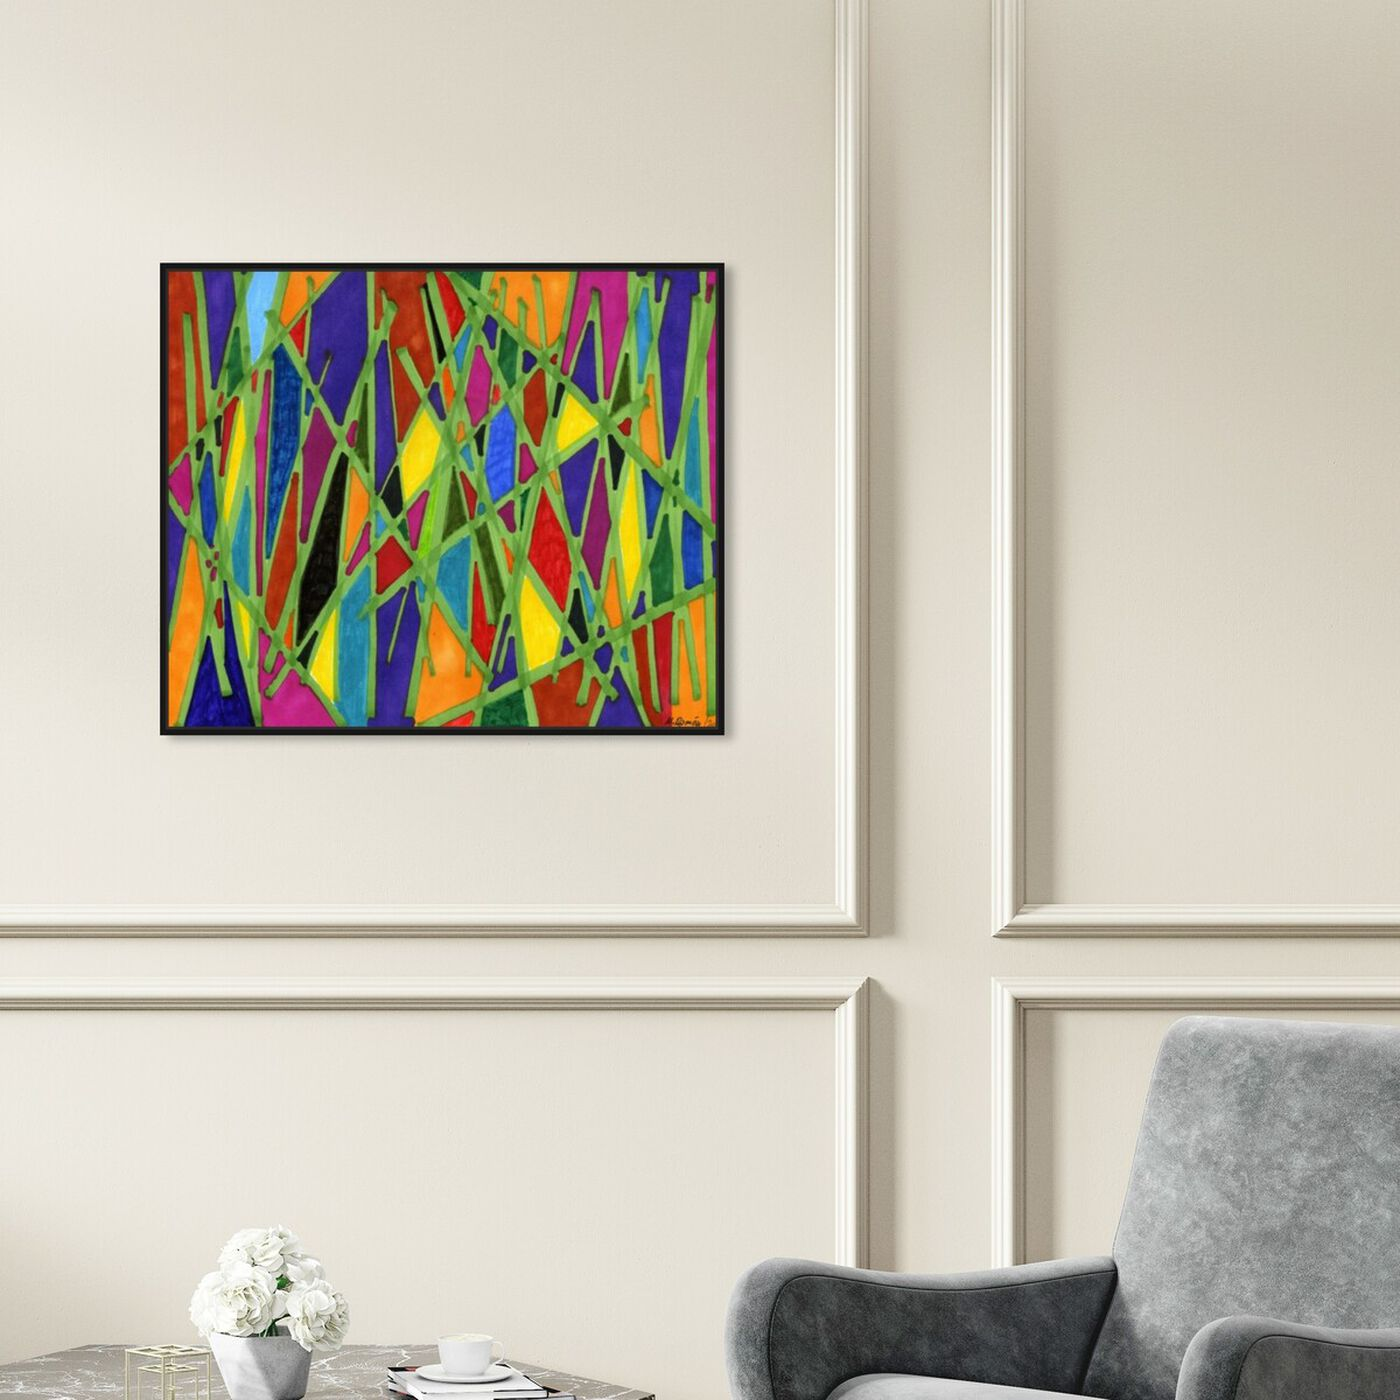 Hanging view of Bamboo Jungle featuring abstract and geometric art.